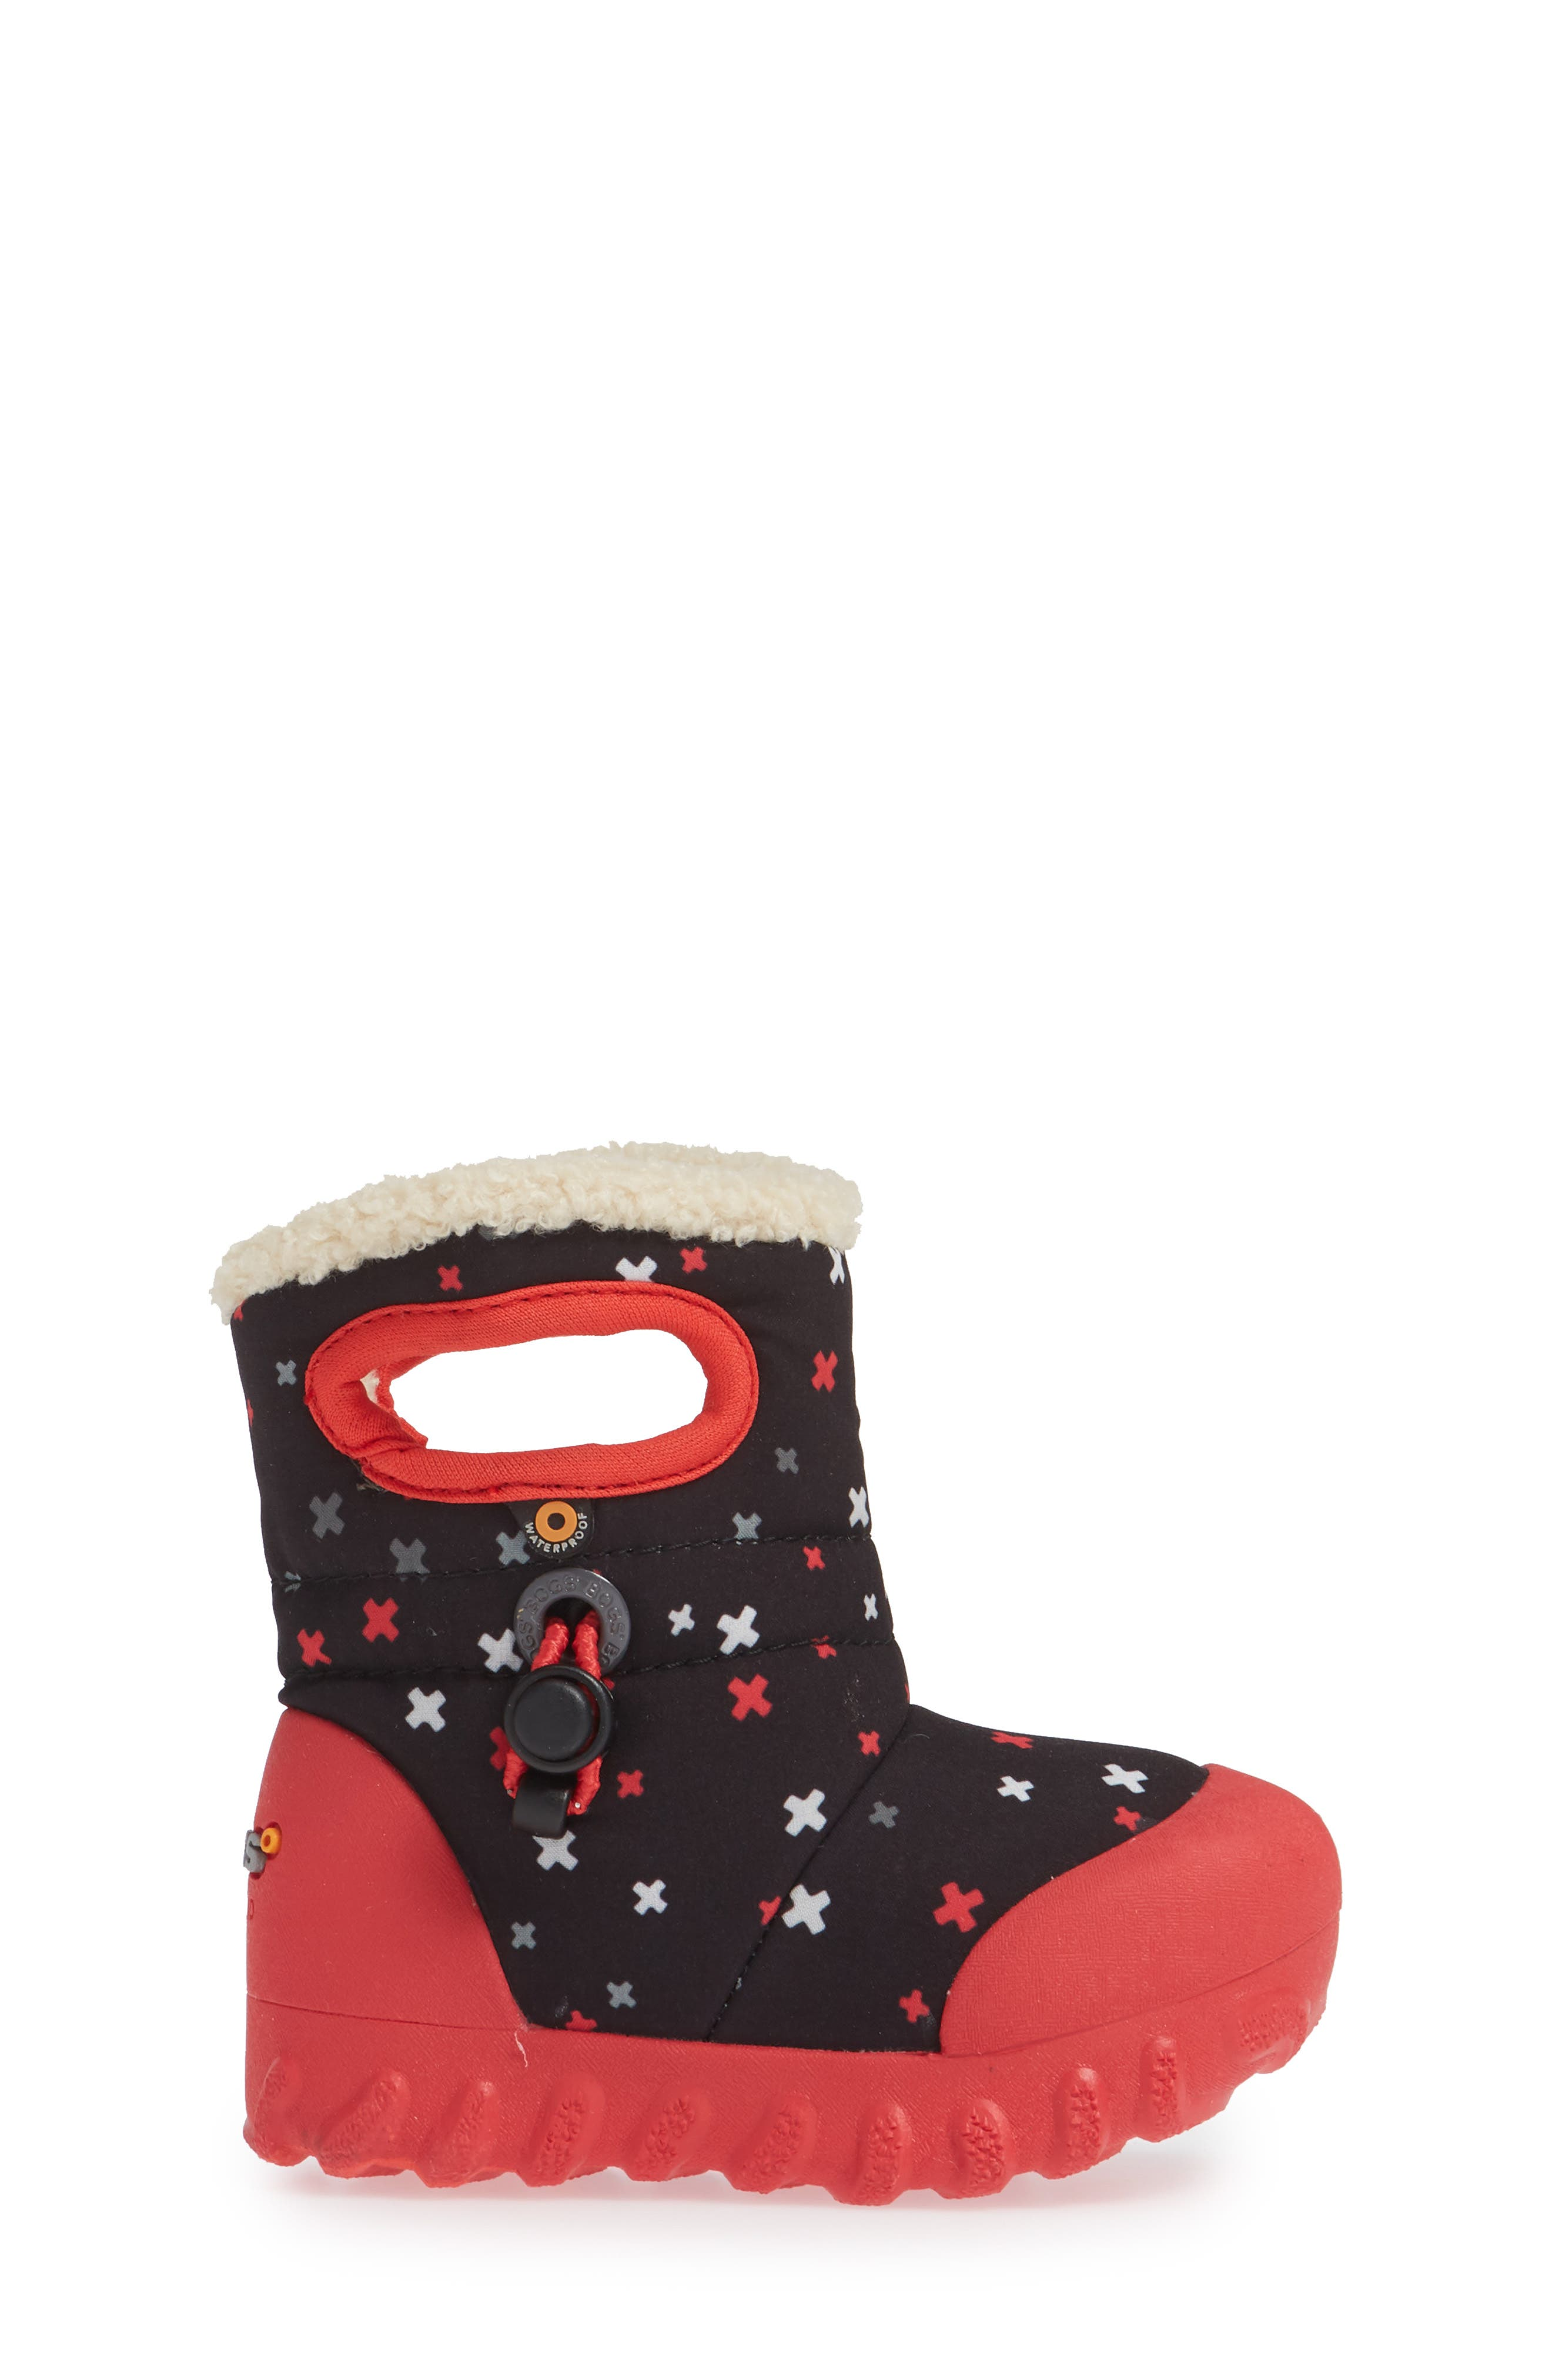 BOGS, B-MOC Plus Waterproof Insulated Faux Fur Boot, Alternate thumbnail 3, color, 009